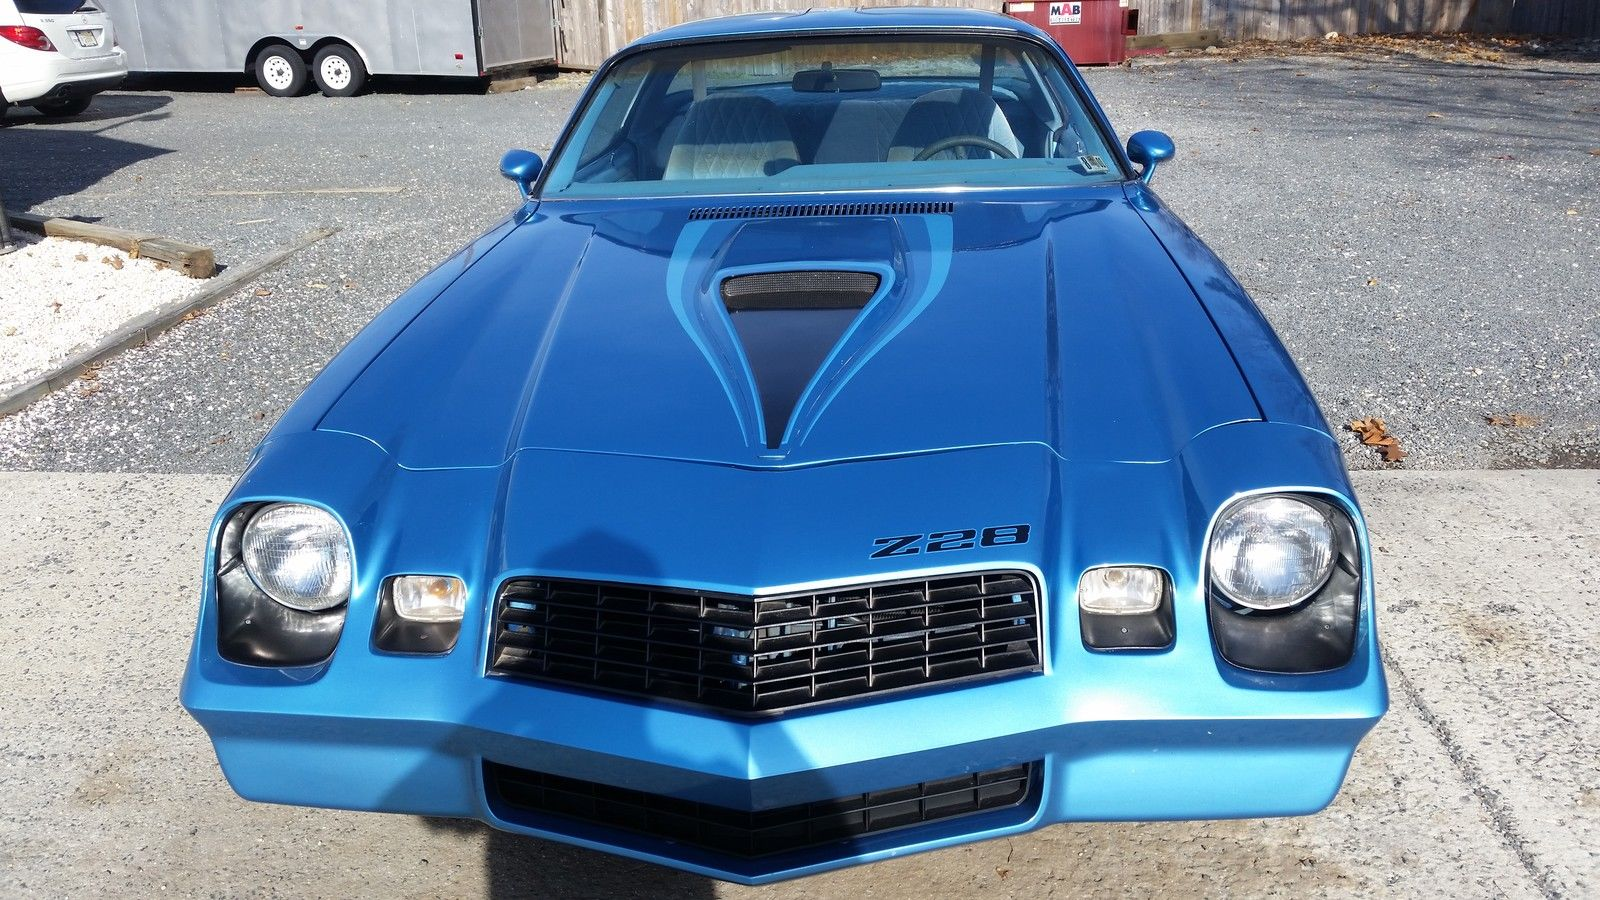 Chevy Van G Shorty Short as well X further  furthermore  likewise Chevy Camaro Z Speed T Top Very Clean Car No Rust Rot Nr. on blue chevy 350 engine